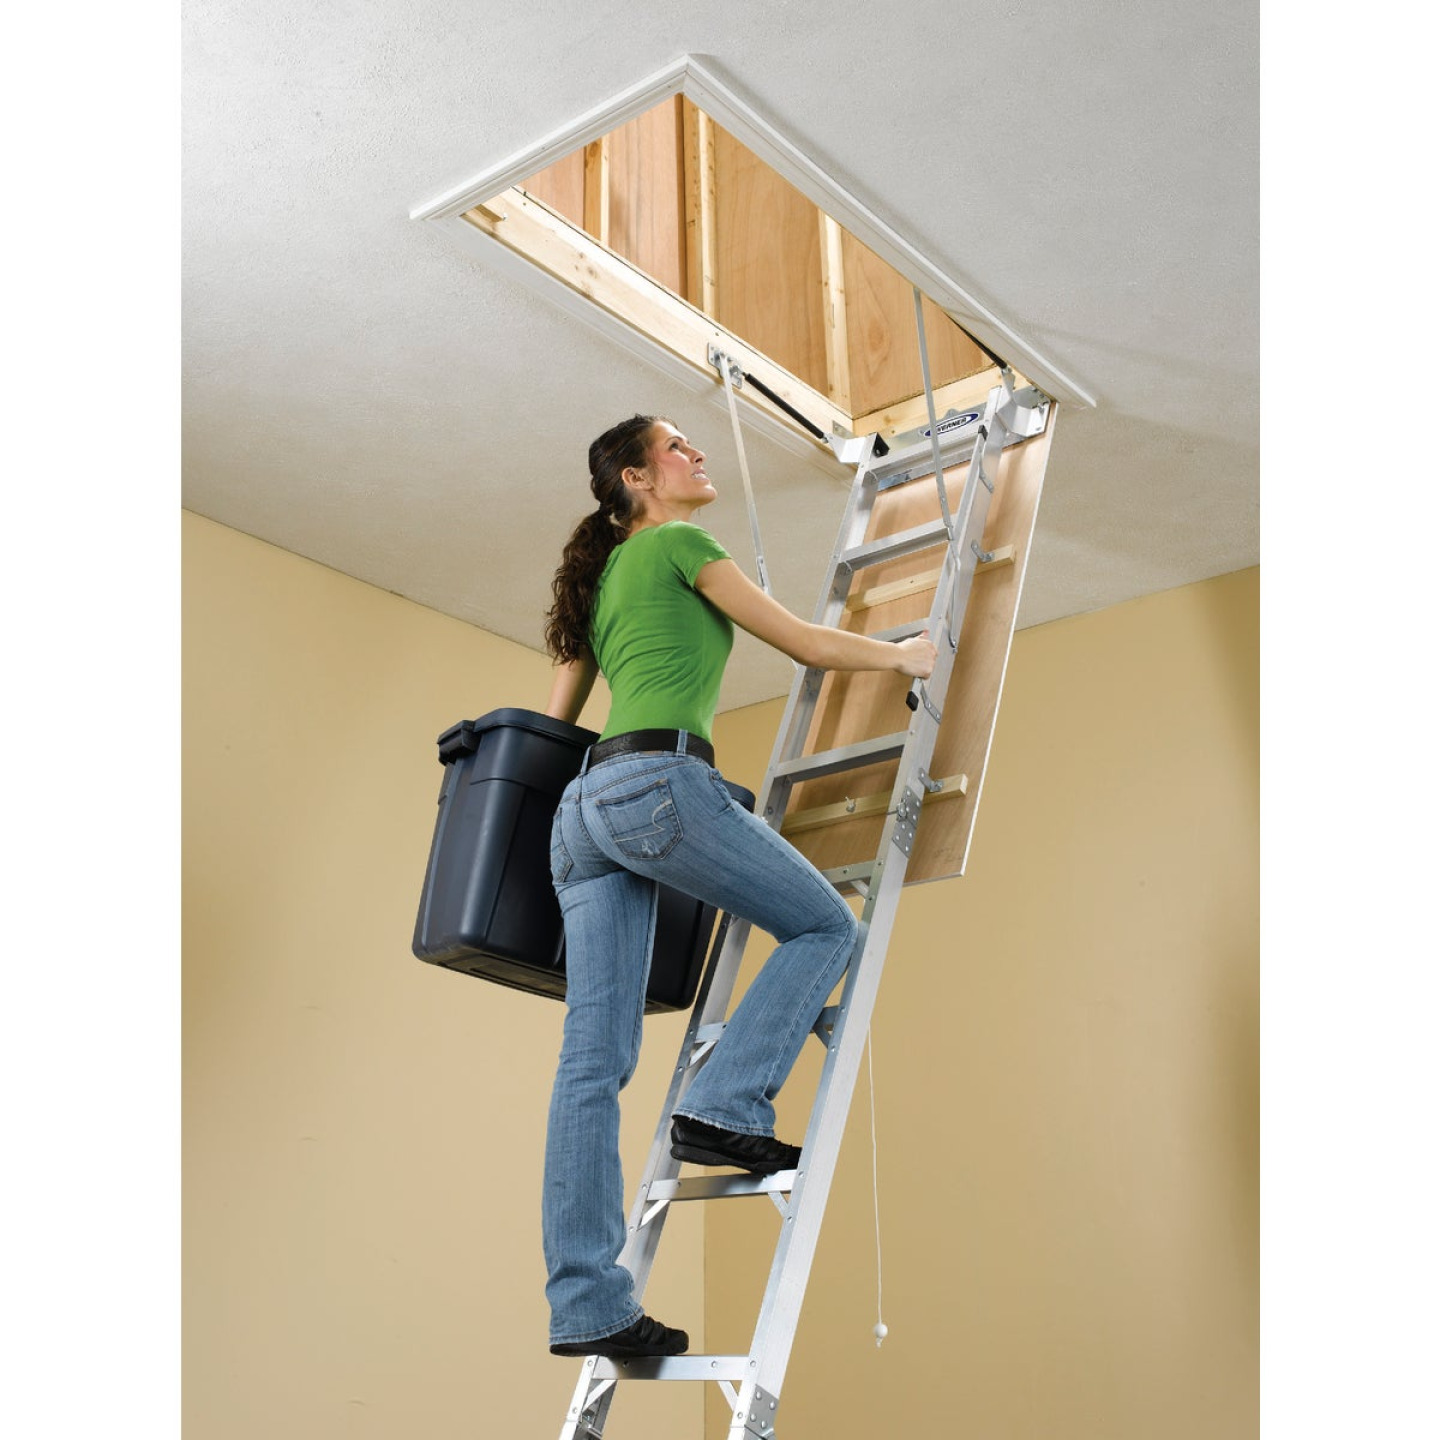 Werner Universal 8 Ft. to 10 Ft. 22-1/2 In. x 54 In. Aluminum Attic Stairs, 375 Lb. Load Image 2